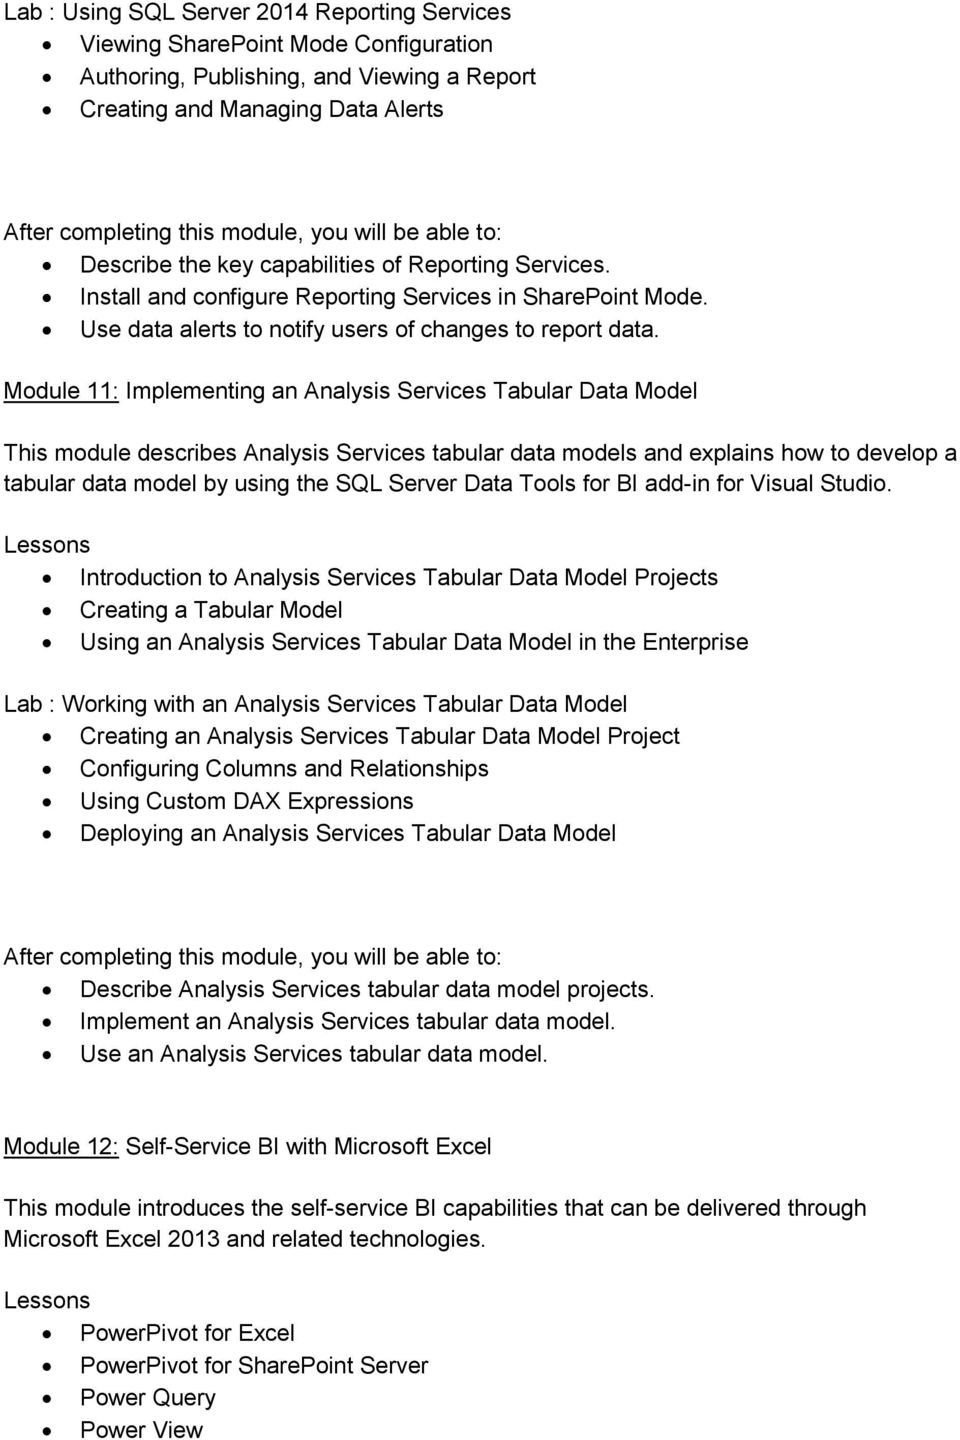 Module 11: Implementing an Analysis Services Tabular Data Model This module describes Analysis Services tabular data models and explains how to develop a tabular data model by using the SQL Server